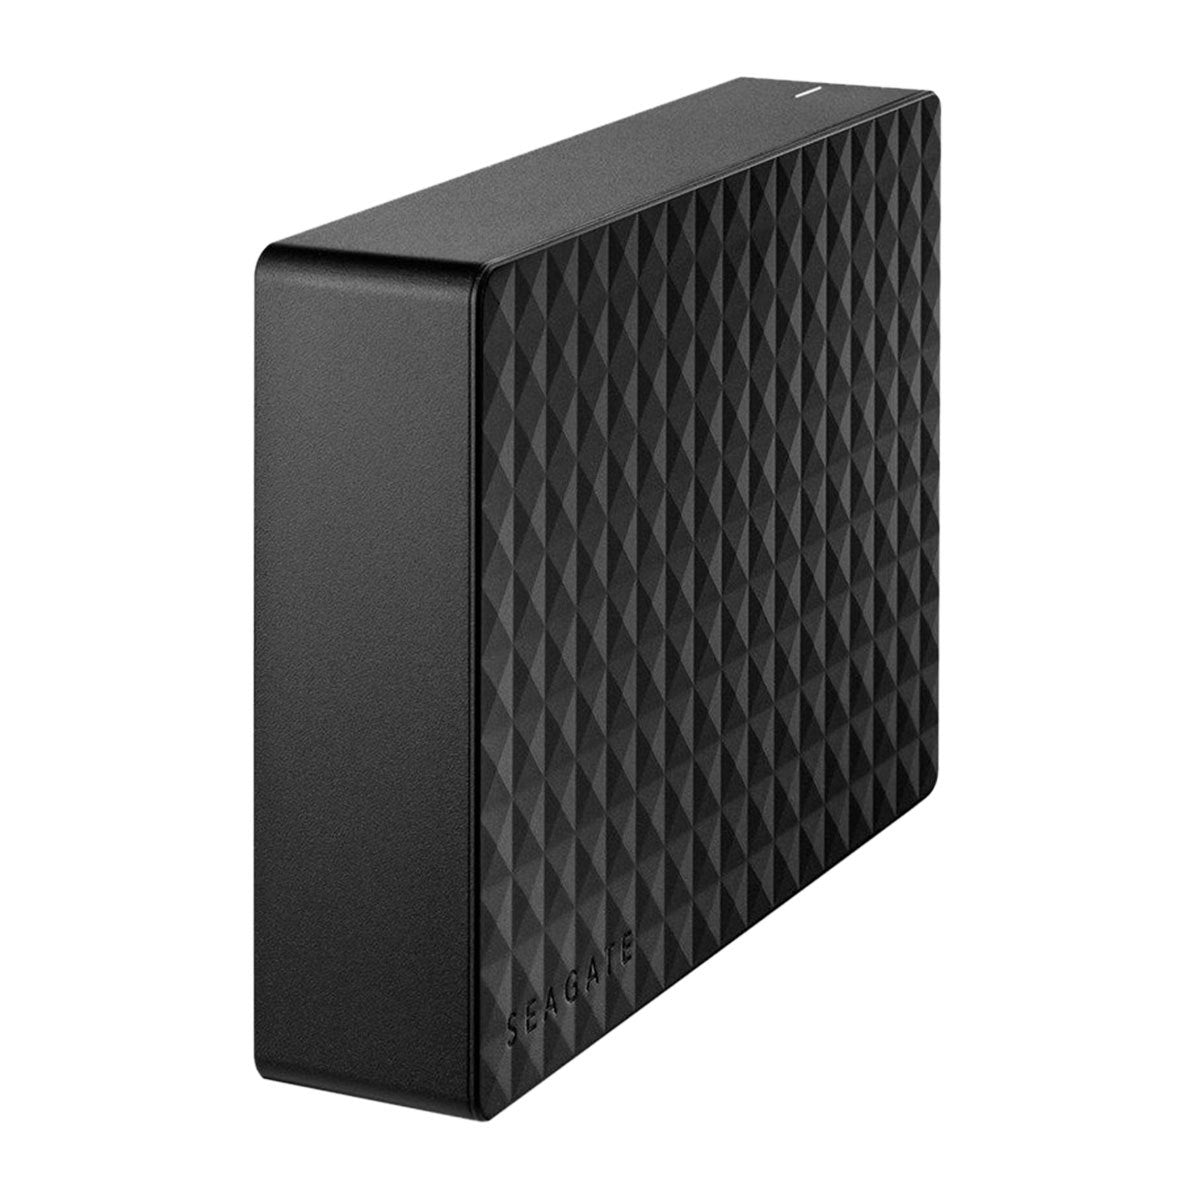 Seagate 8TB Expansion USB 3.0 Portable 2.5 Inch External Hard Drive for PC and MAC